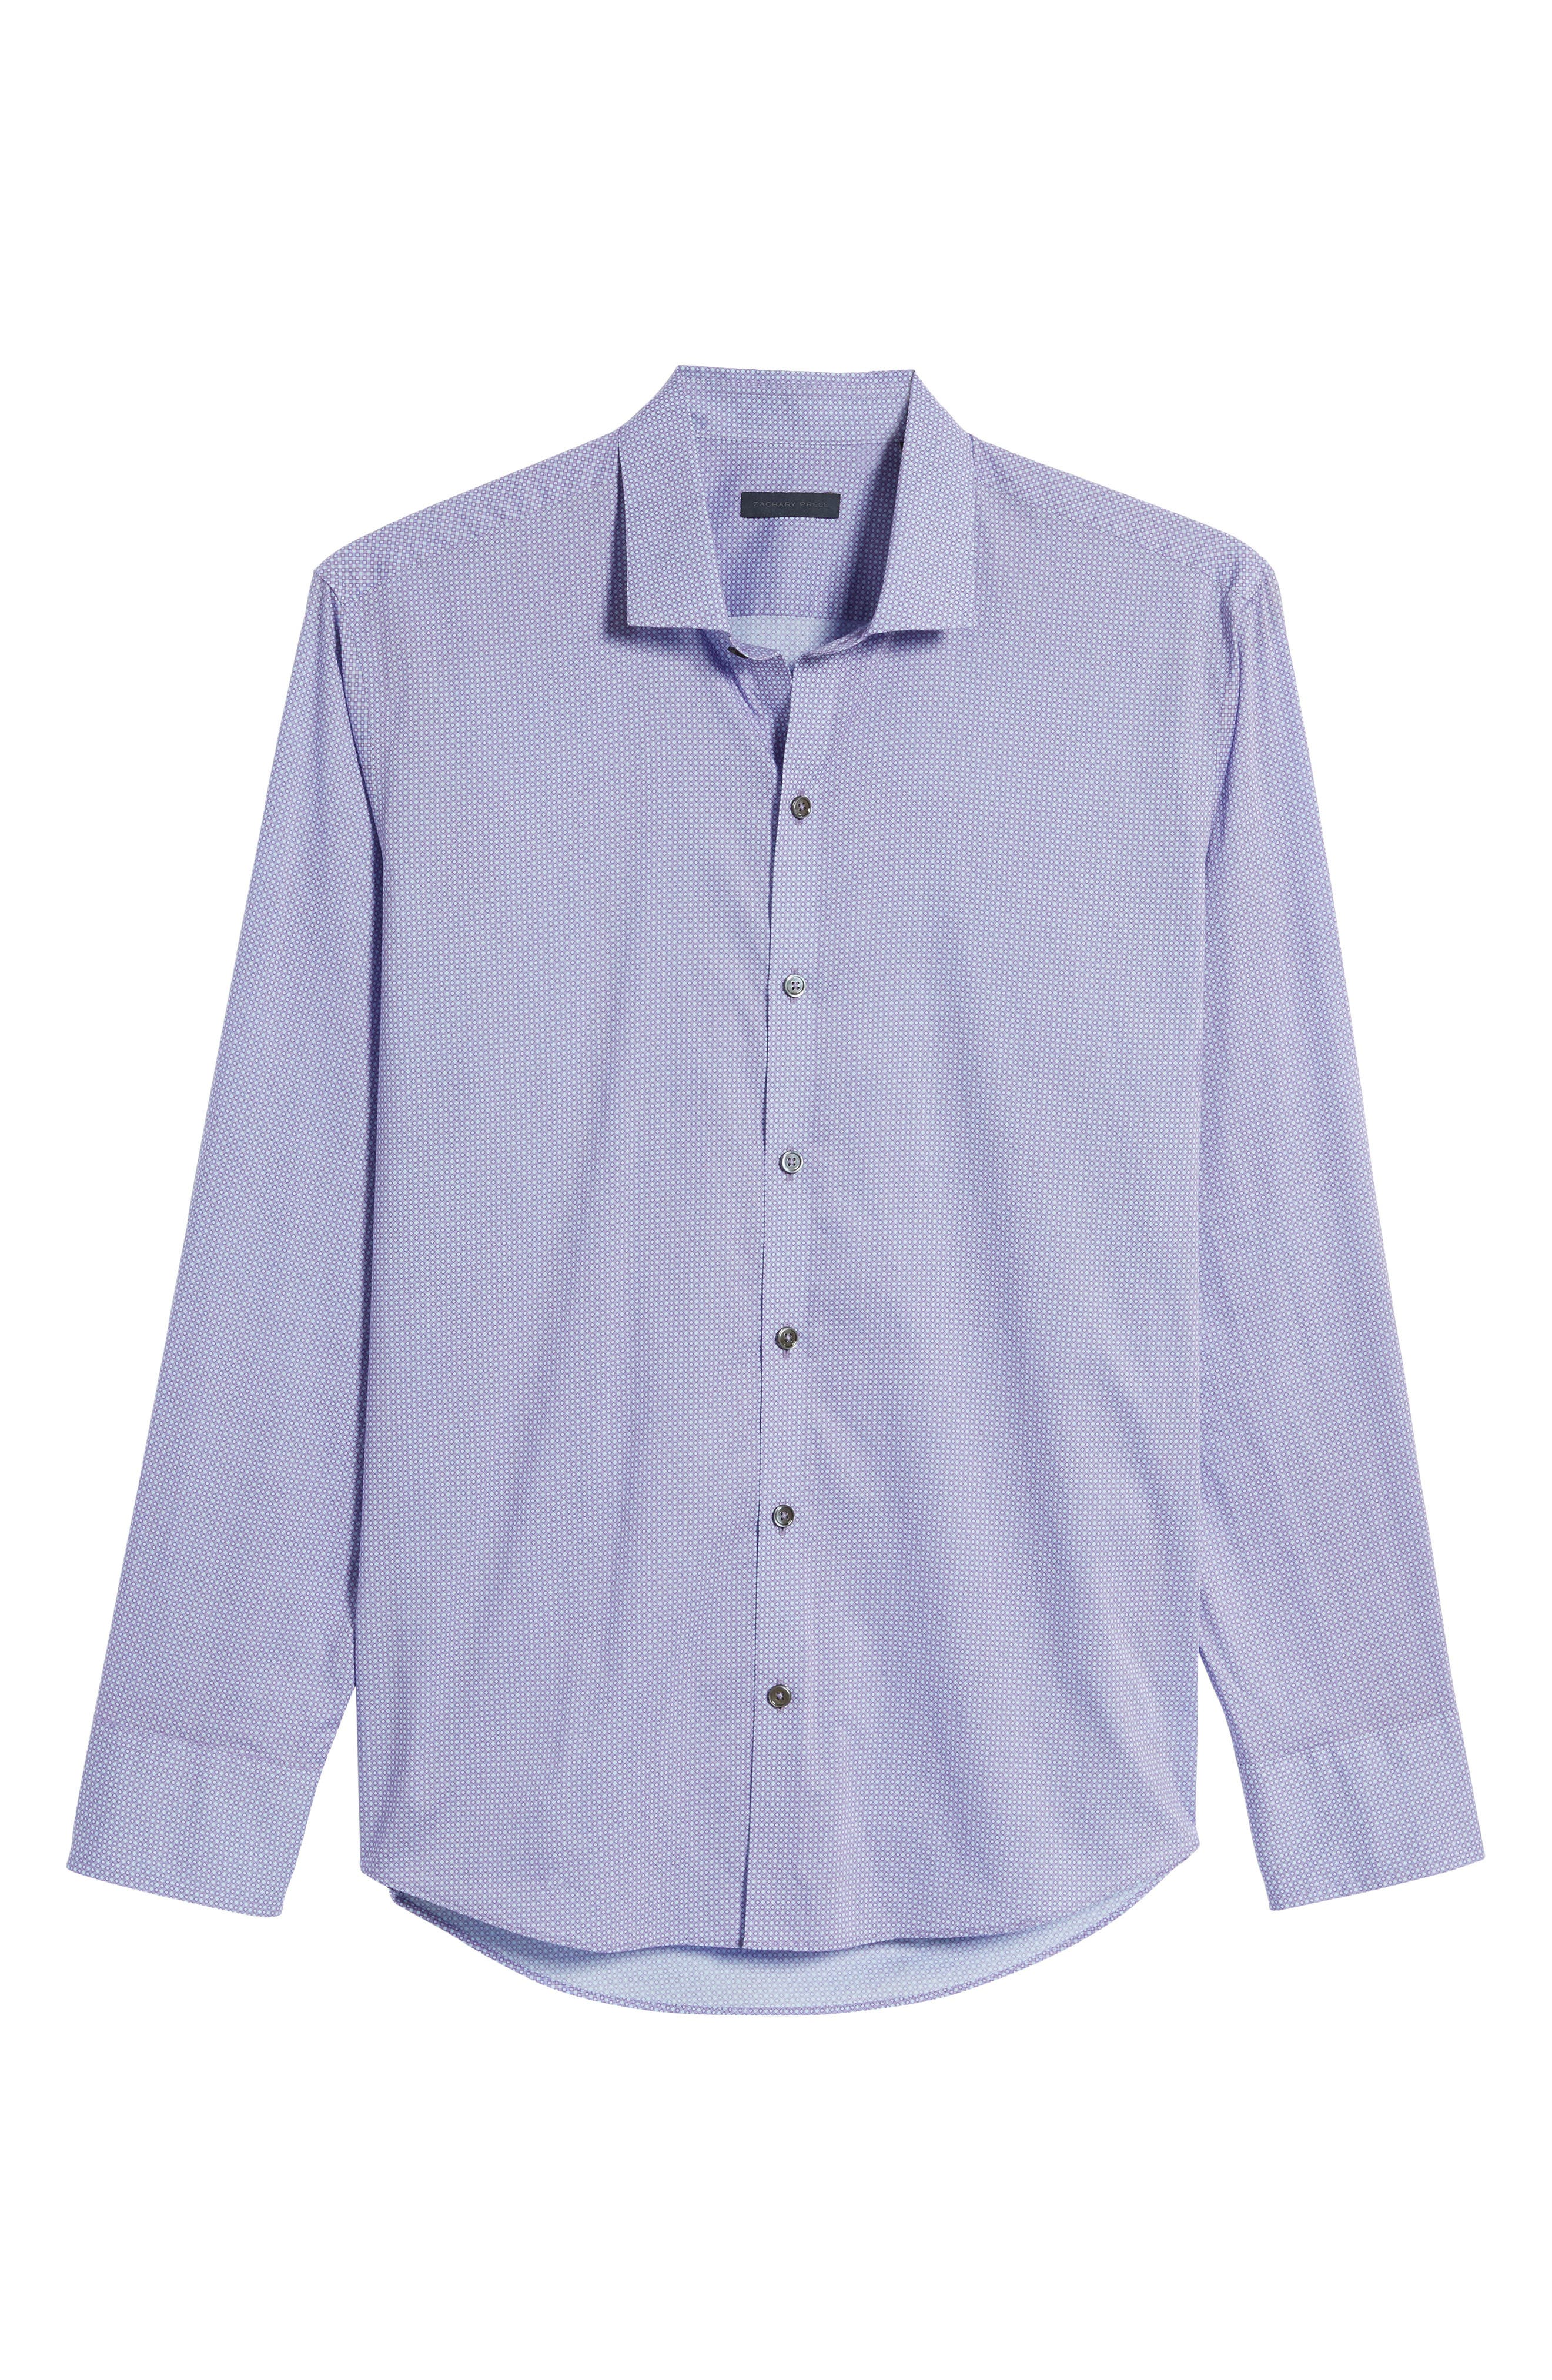 O'Malley Circle Print Sport Shirt,                             Alternate thumbnail 6, color,                             Purple